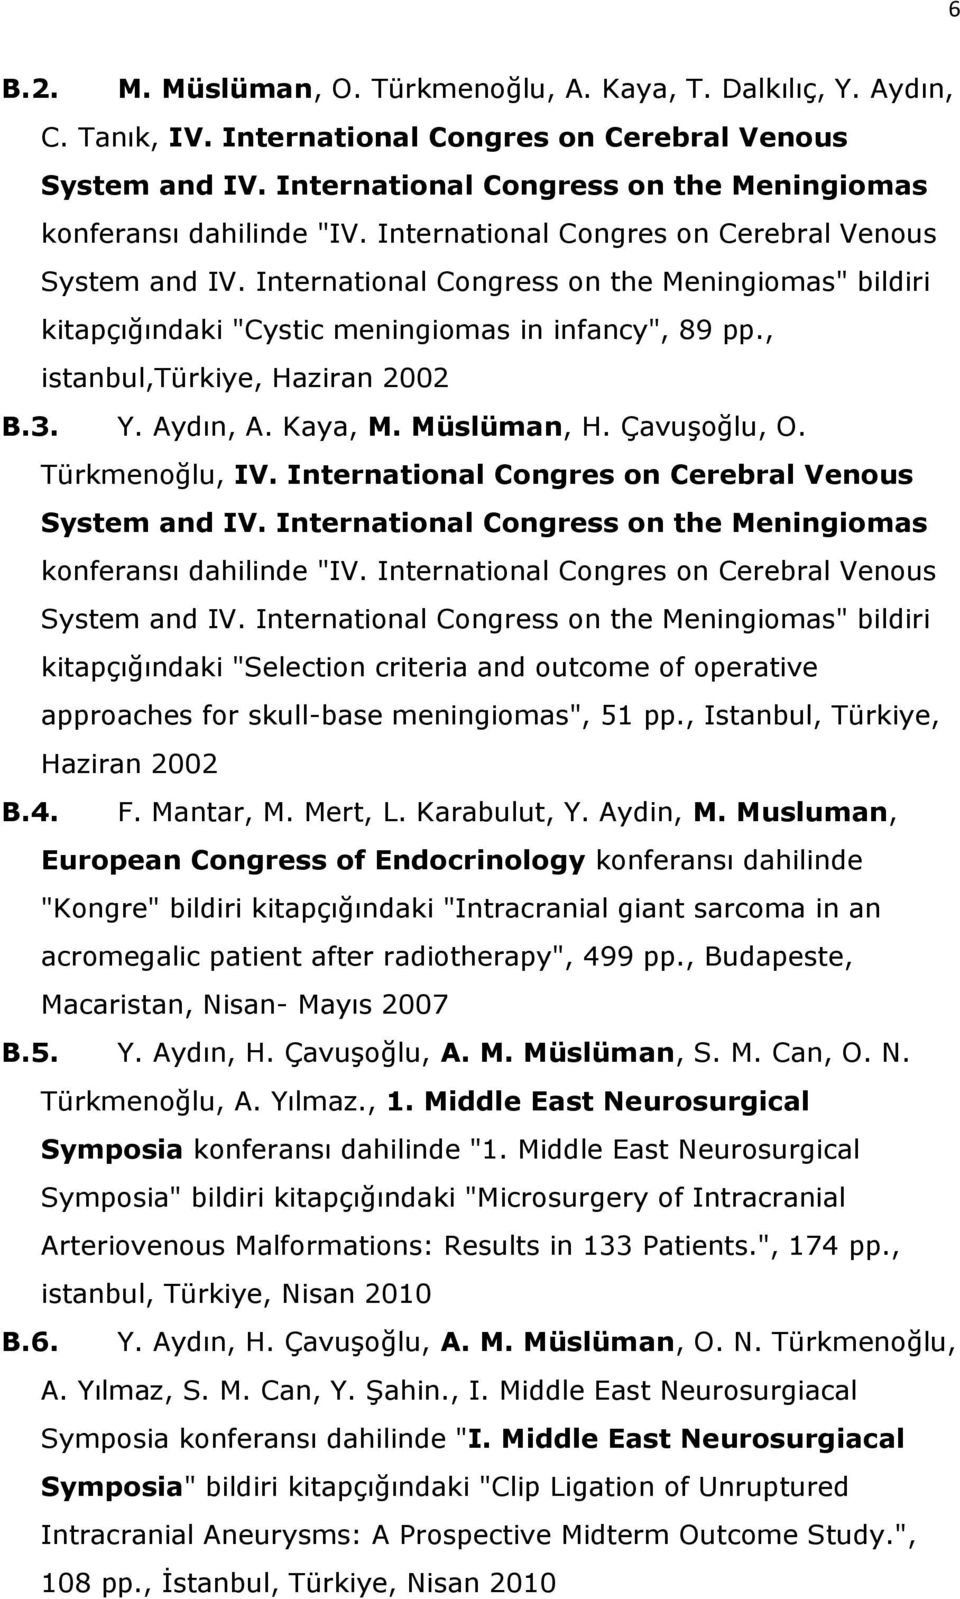 "International Congress on the Meningiomas"" bildiri kitapçığındaki ""Cystic meningiomas in infancy"", 89 pp., istanbul,türkiye, Haziran 2002 B.3. Y. Aydın, A. Kaya, M. Müslüman, H. Çavuşoğlu, O."